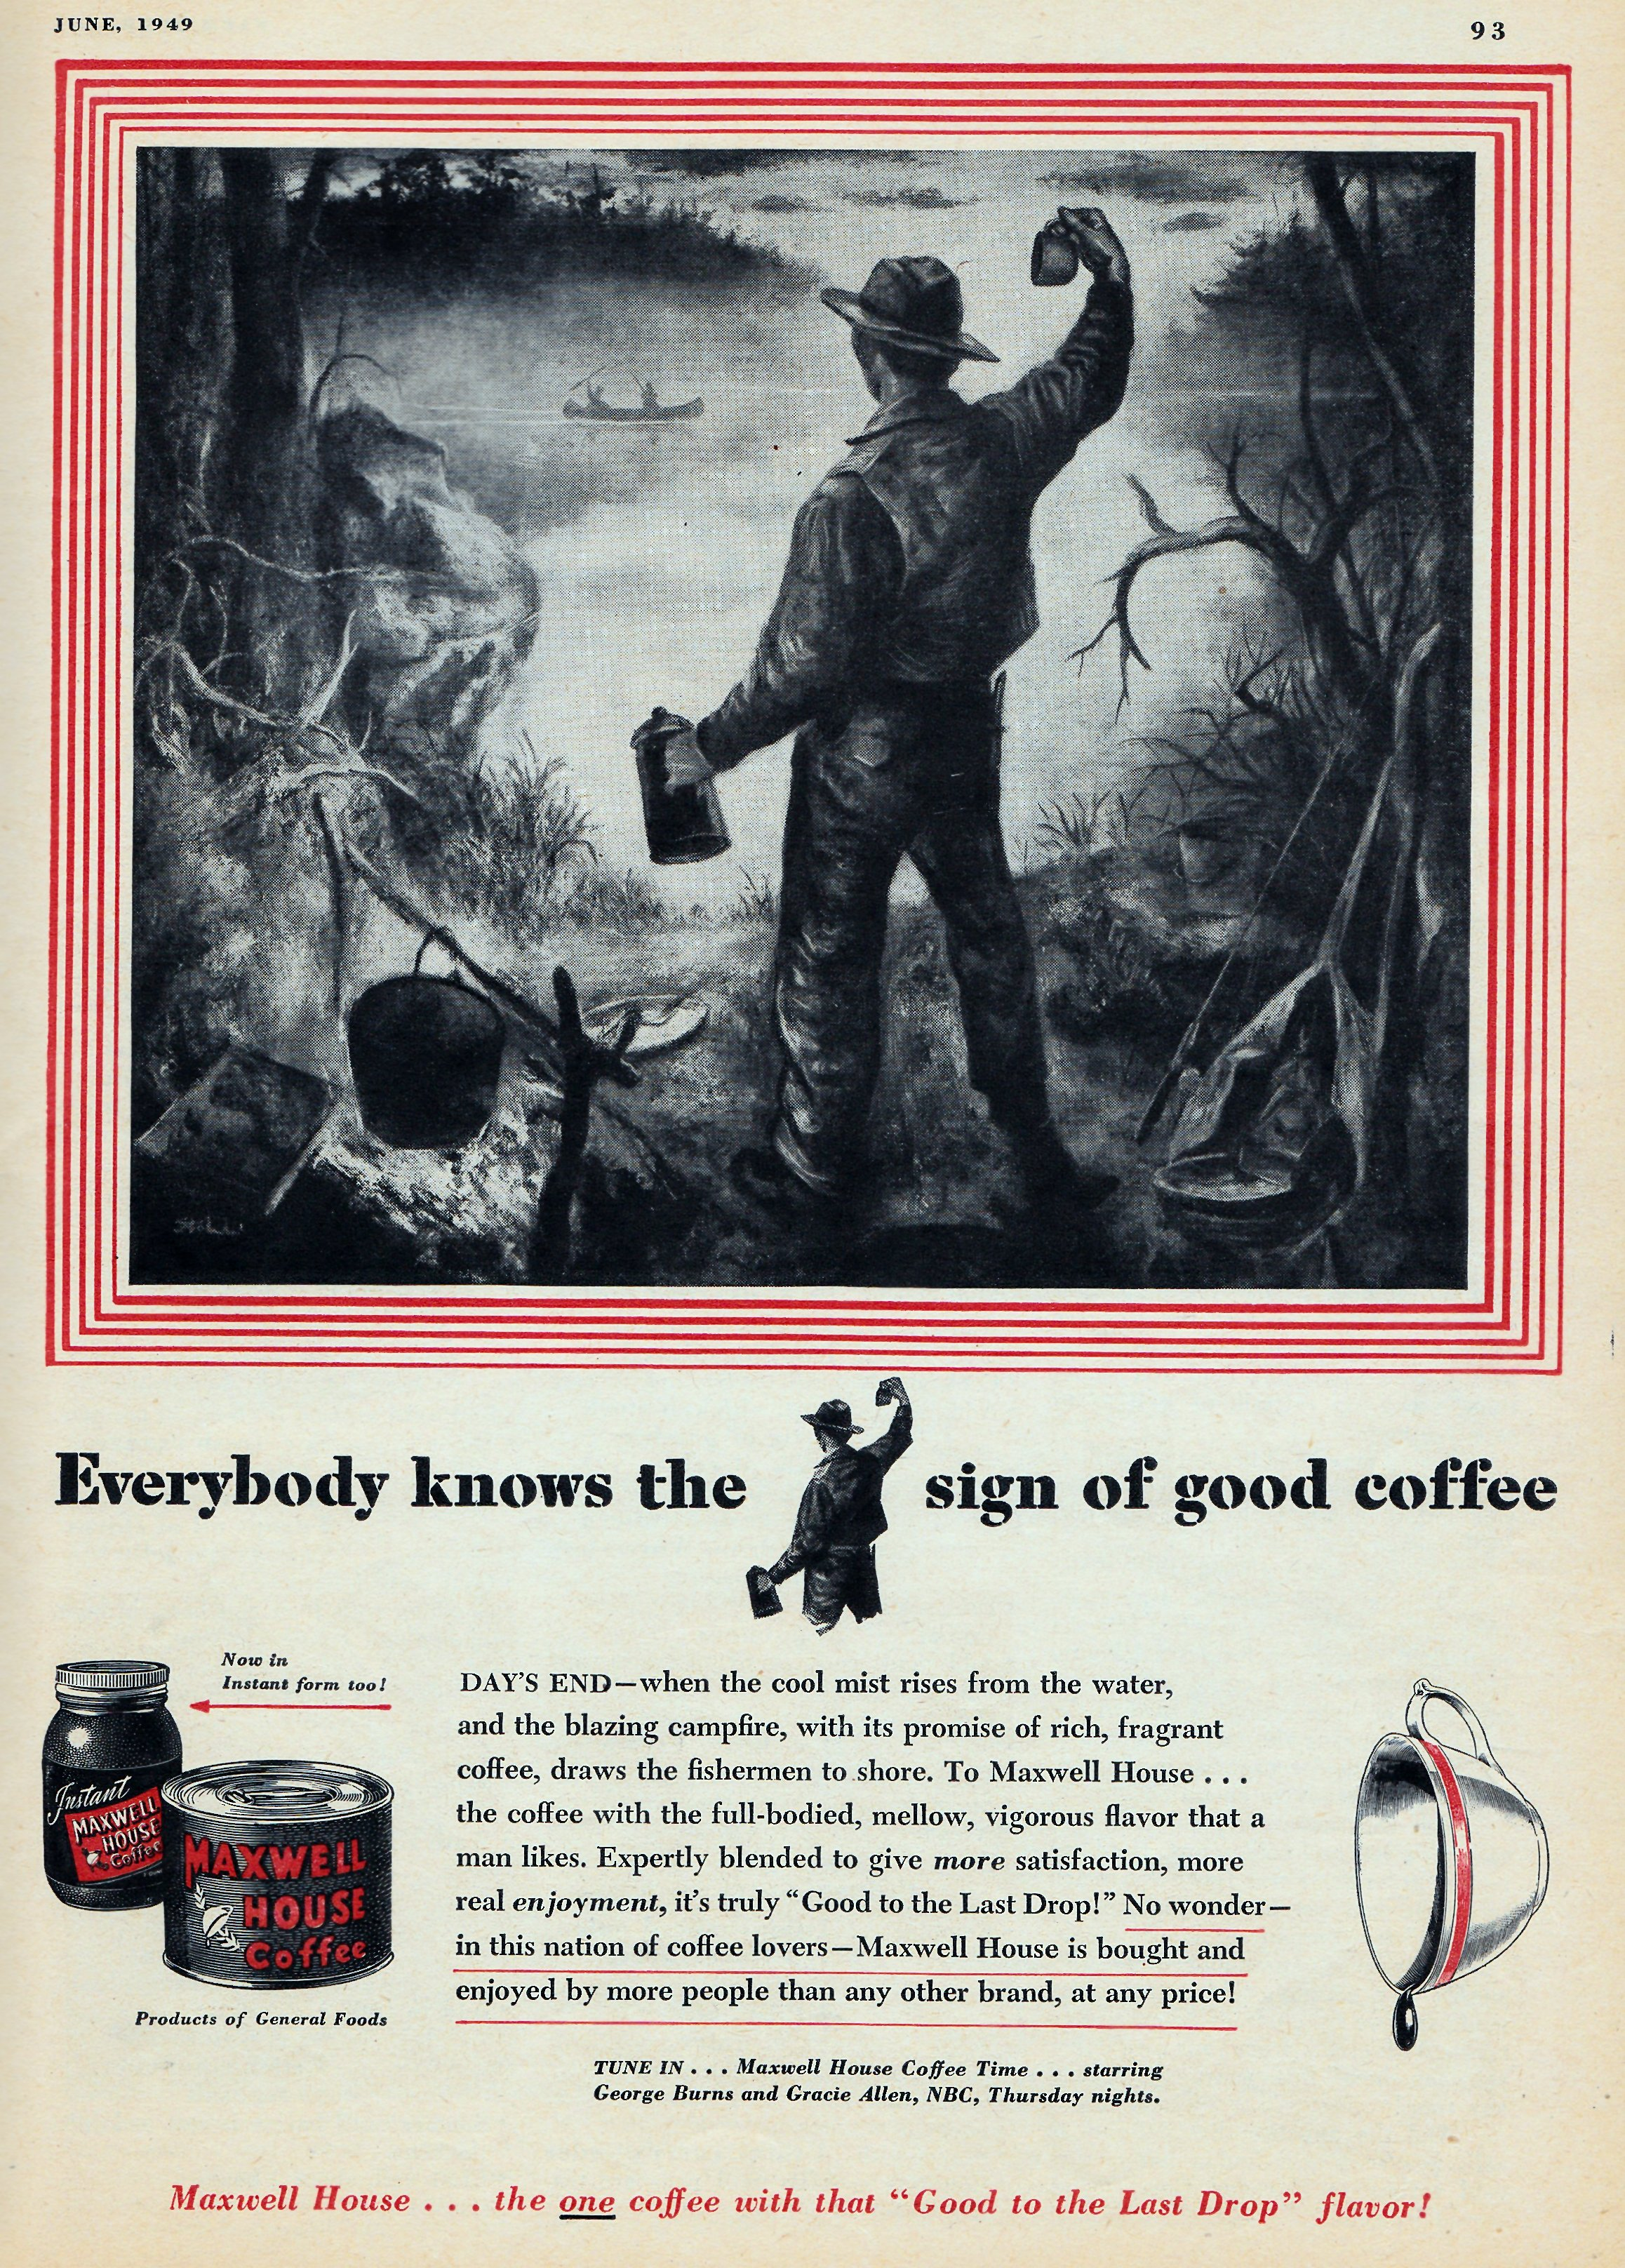 Maxwell House Coffee - June 1949